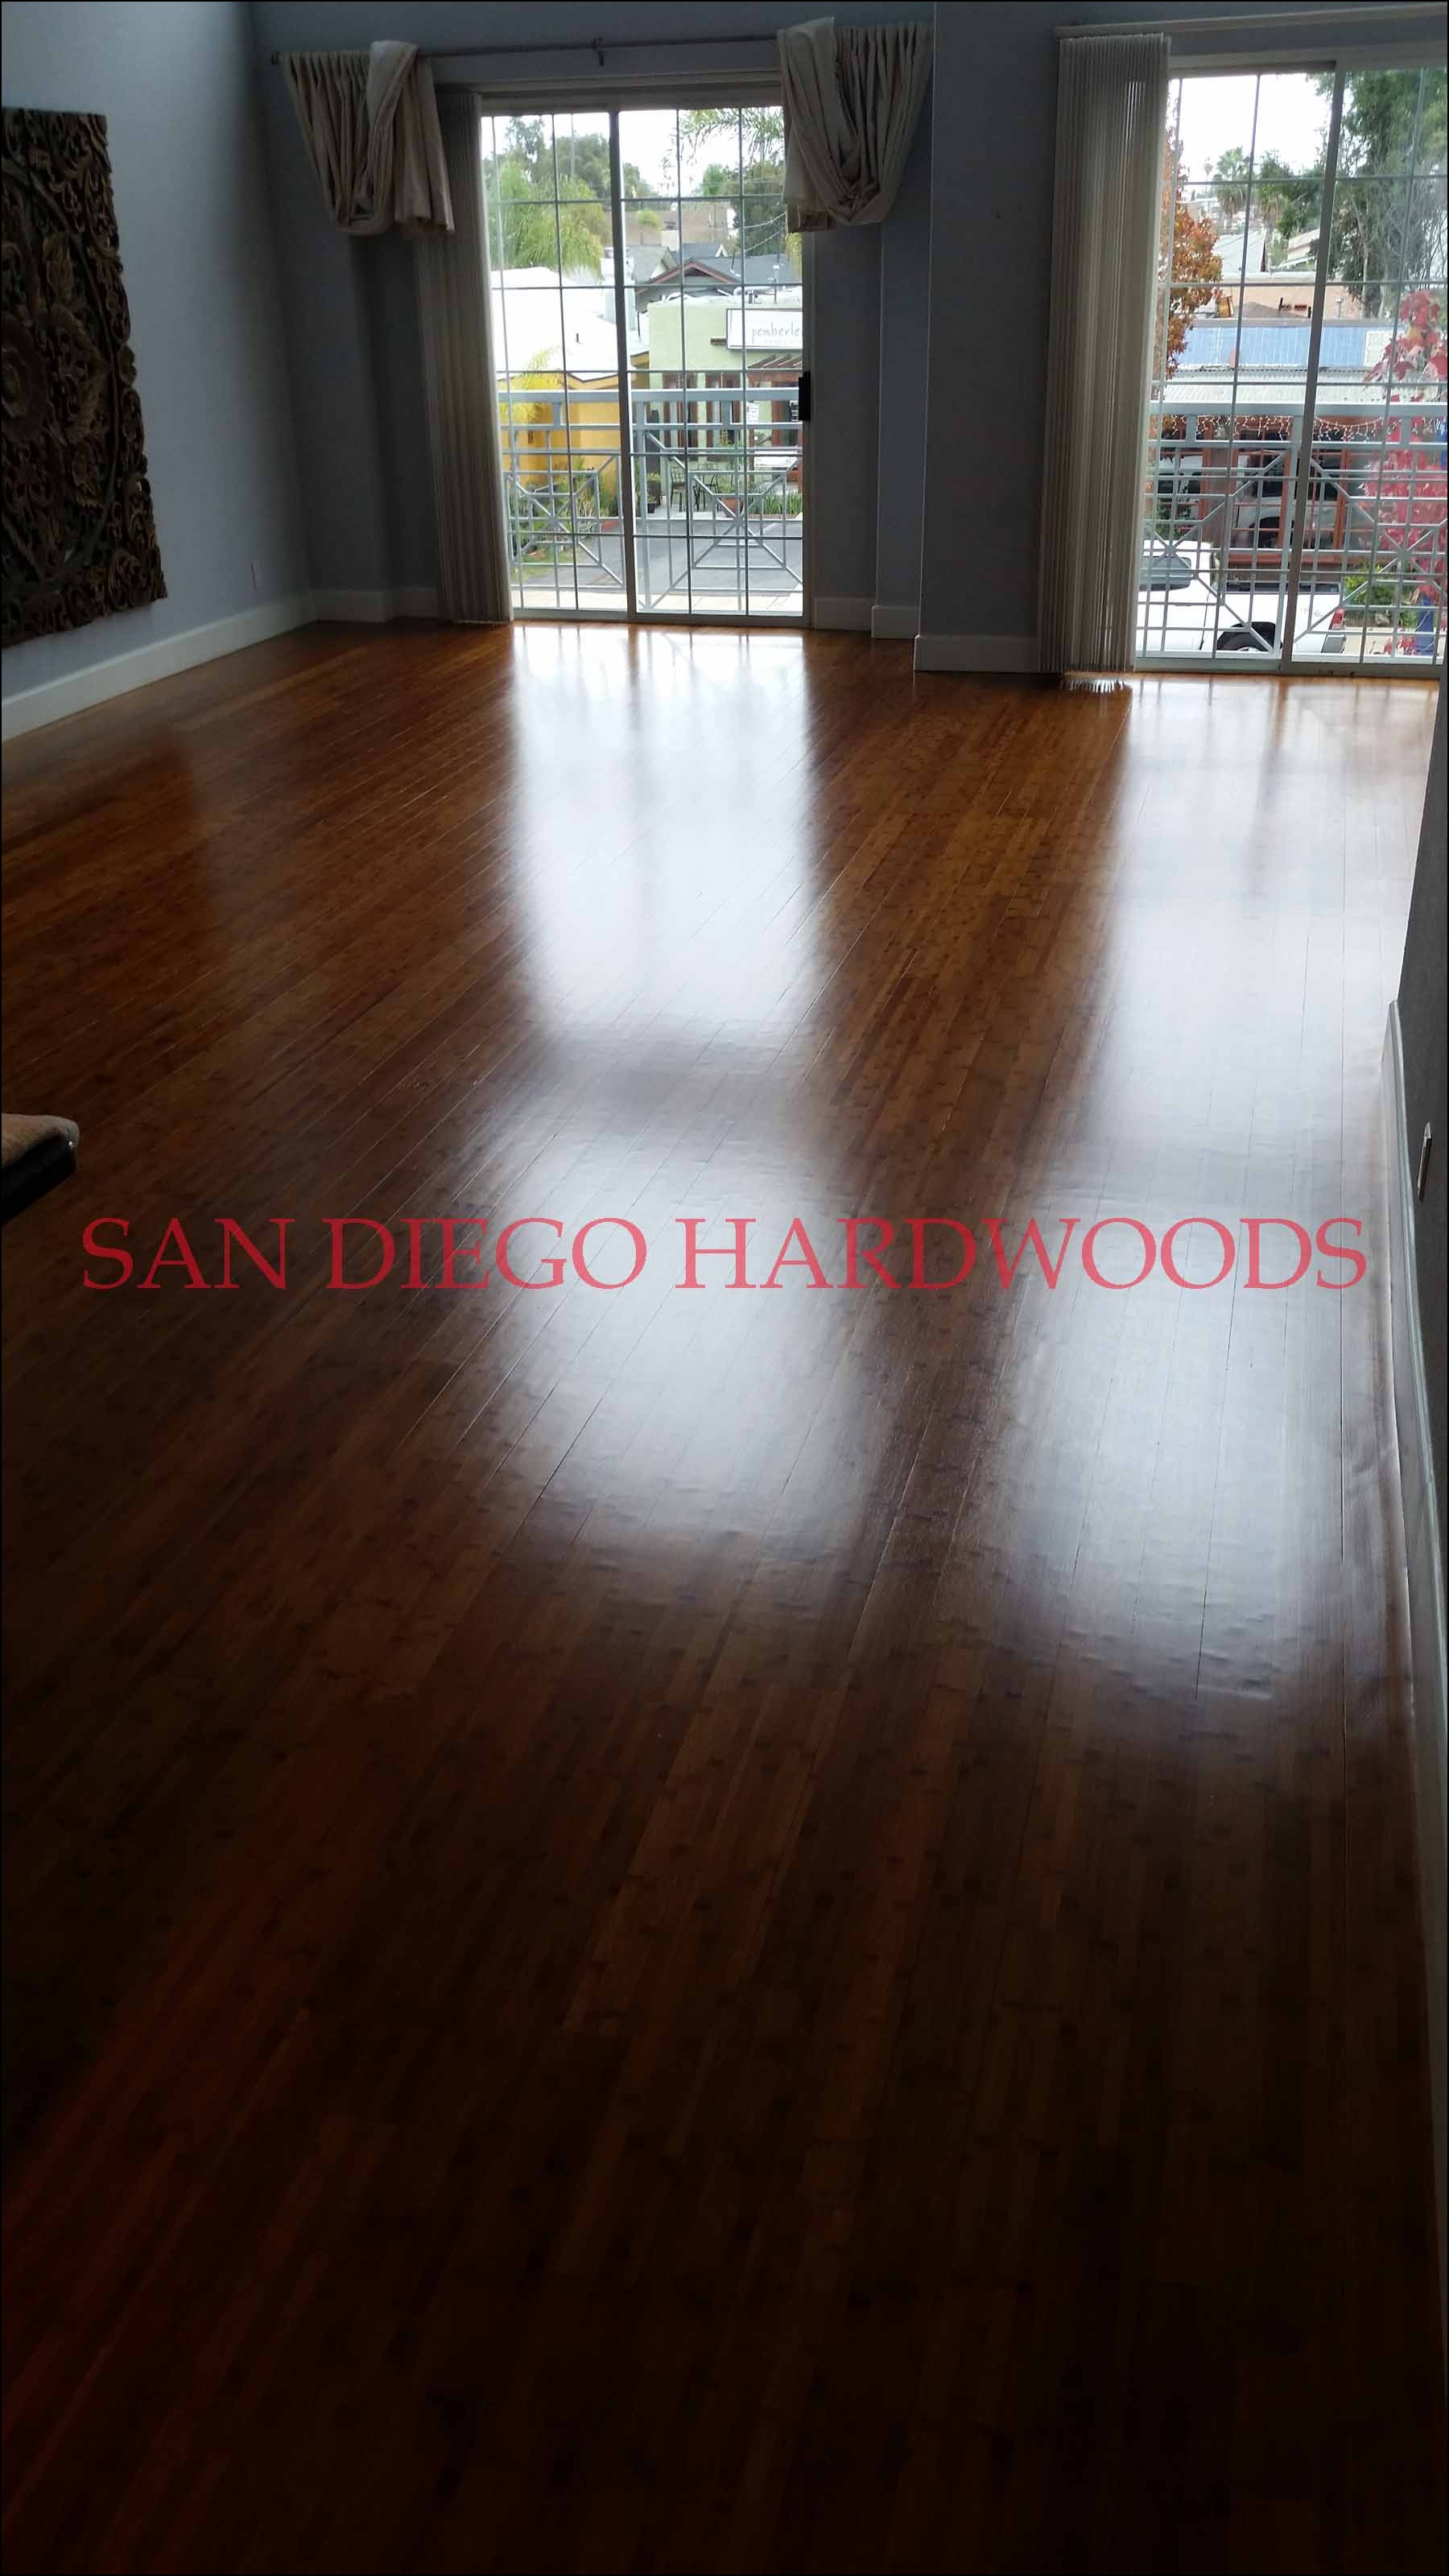 hardwood flooring dimensions of what is flooring ideas within what is the highest quality laminate flooring images san diego hardwood floor restoration 858 699 0072